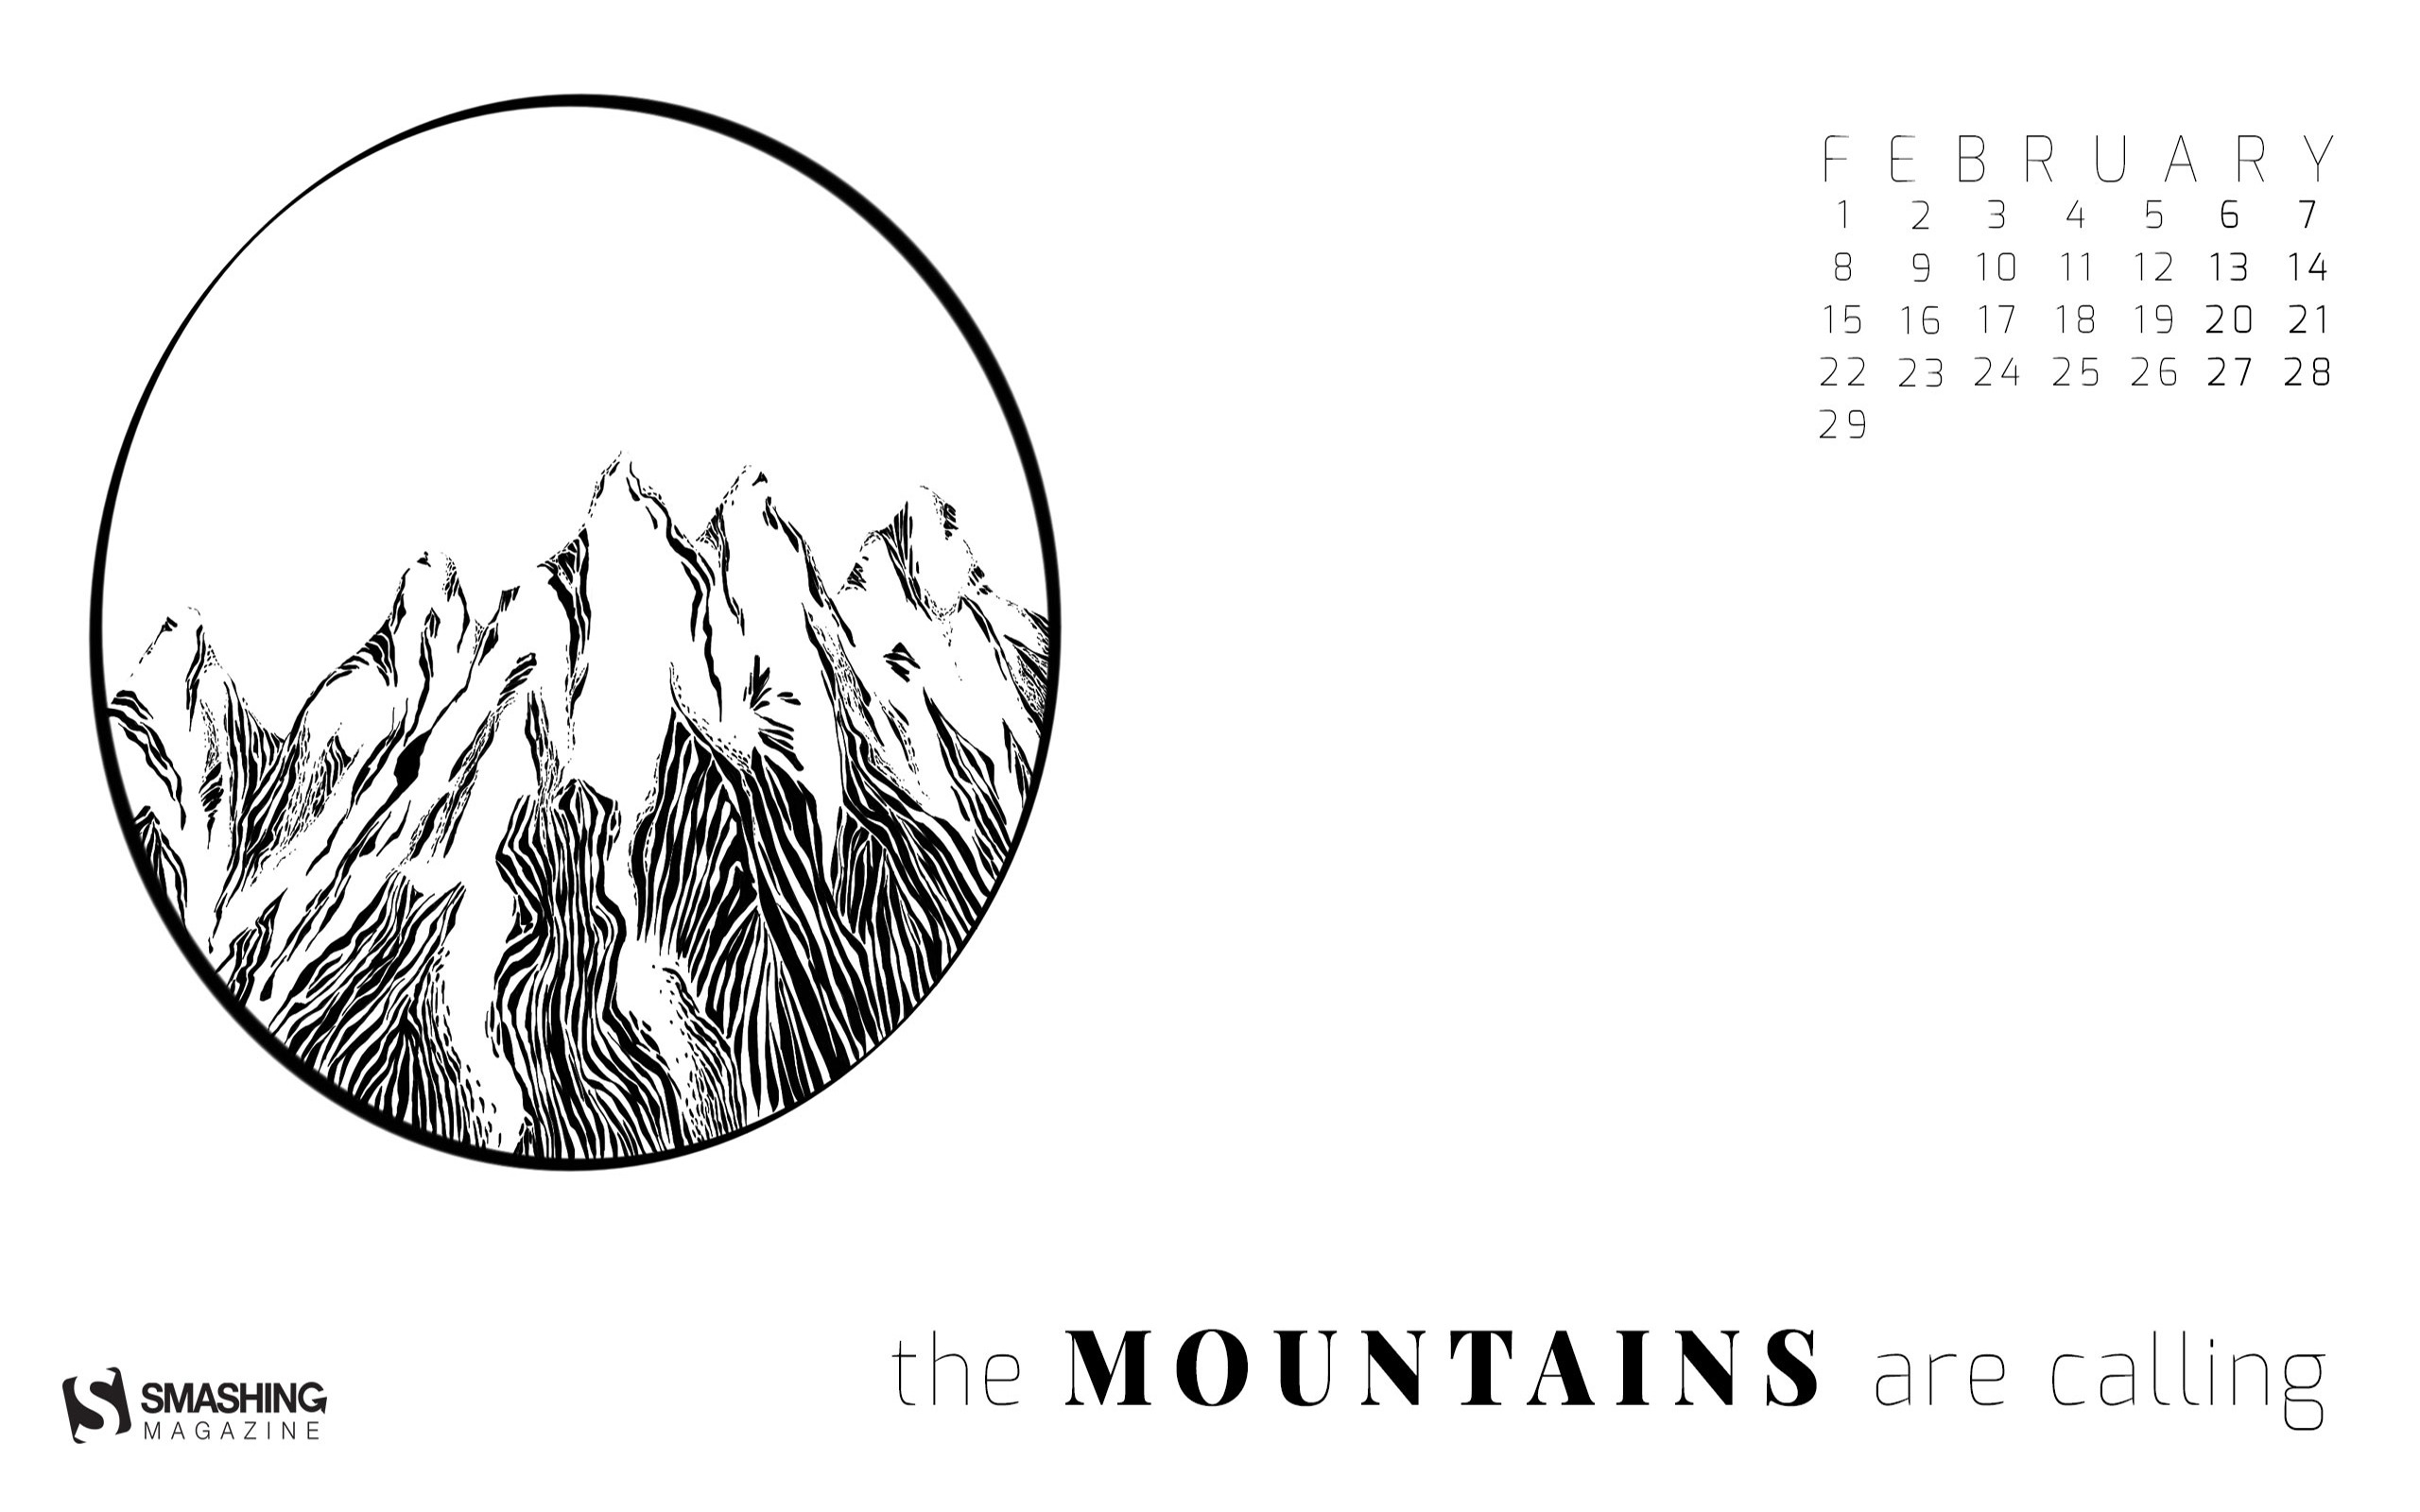 The Mountains Are Calling February 2016 Calendar Wallpaper Preview